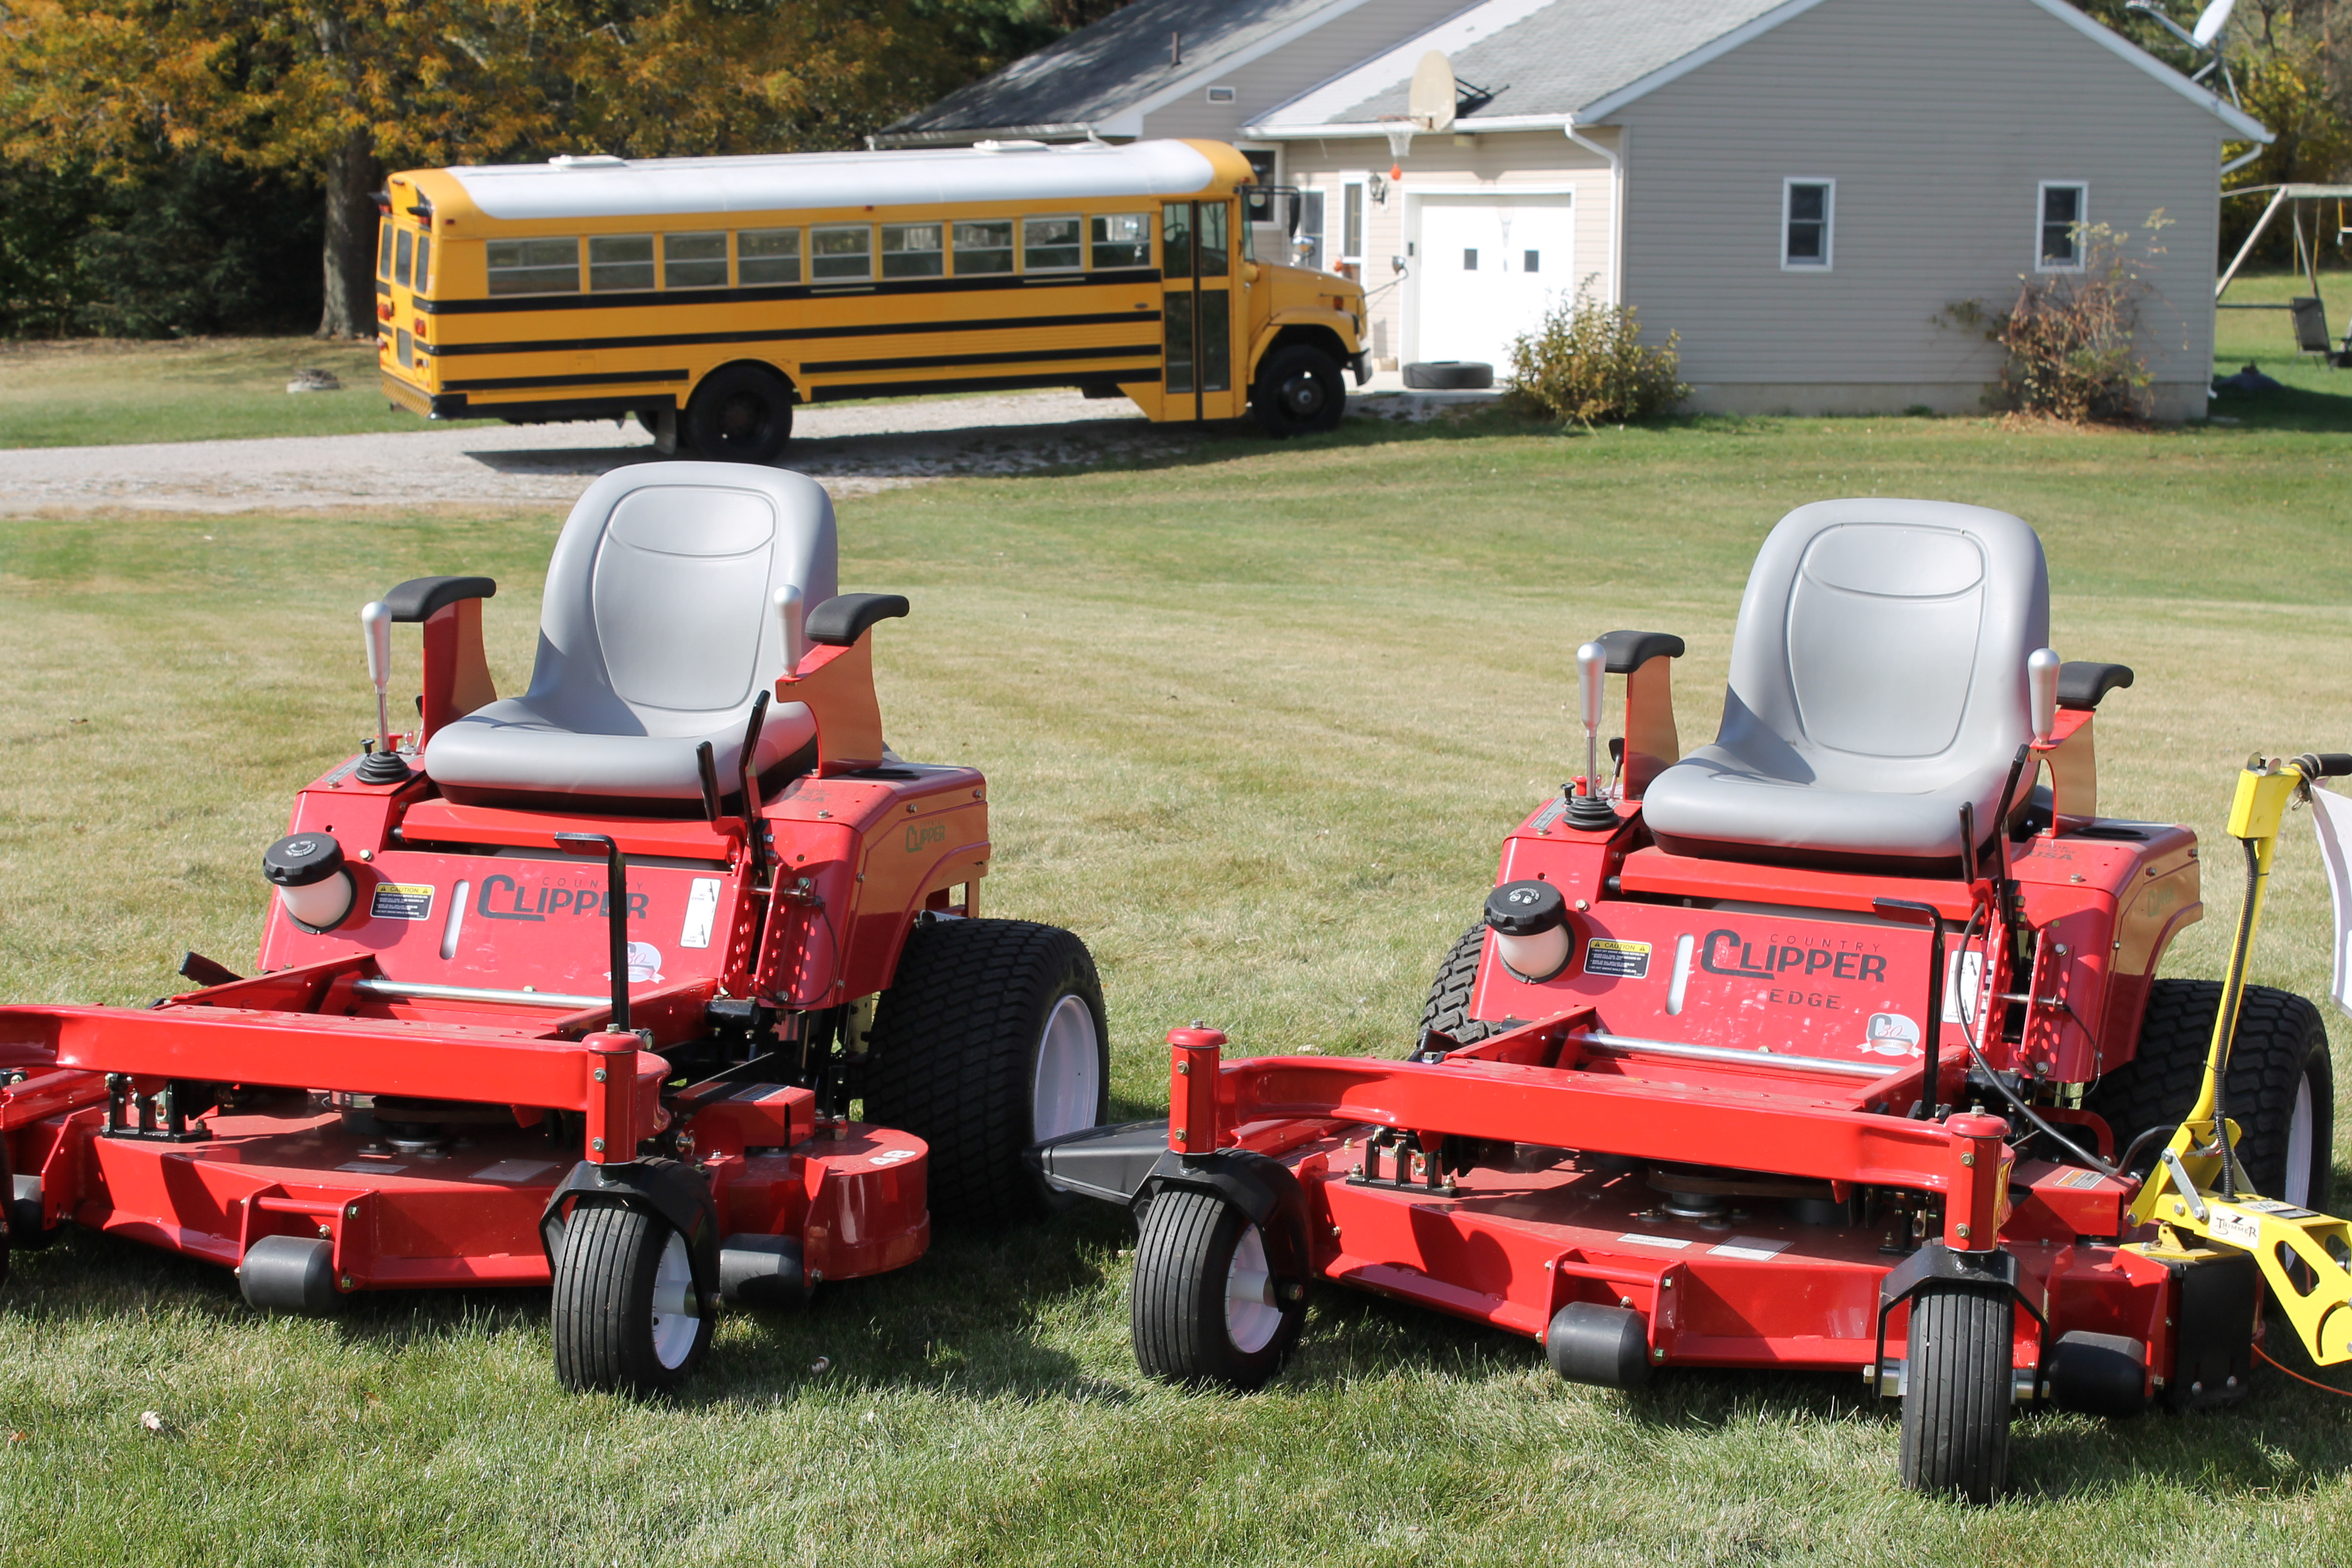 Country clipper Mowers Owners manual